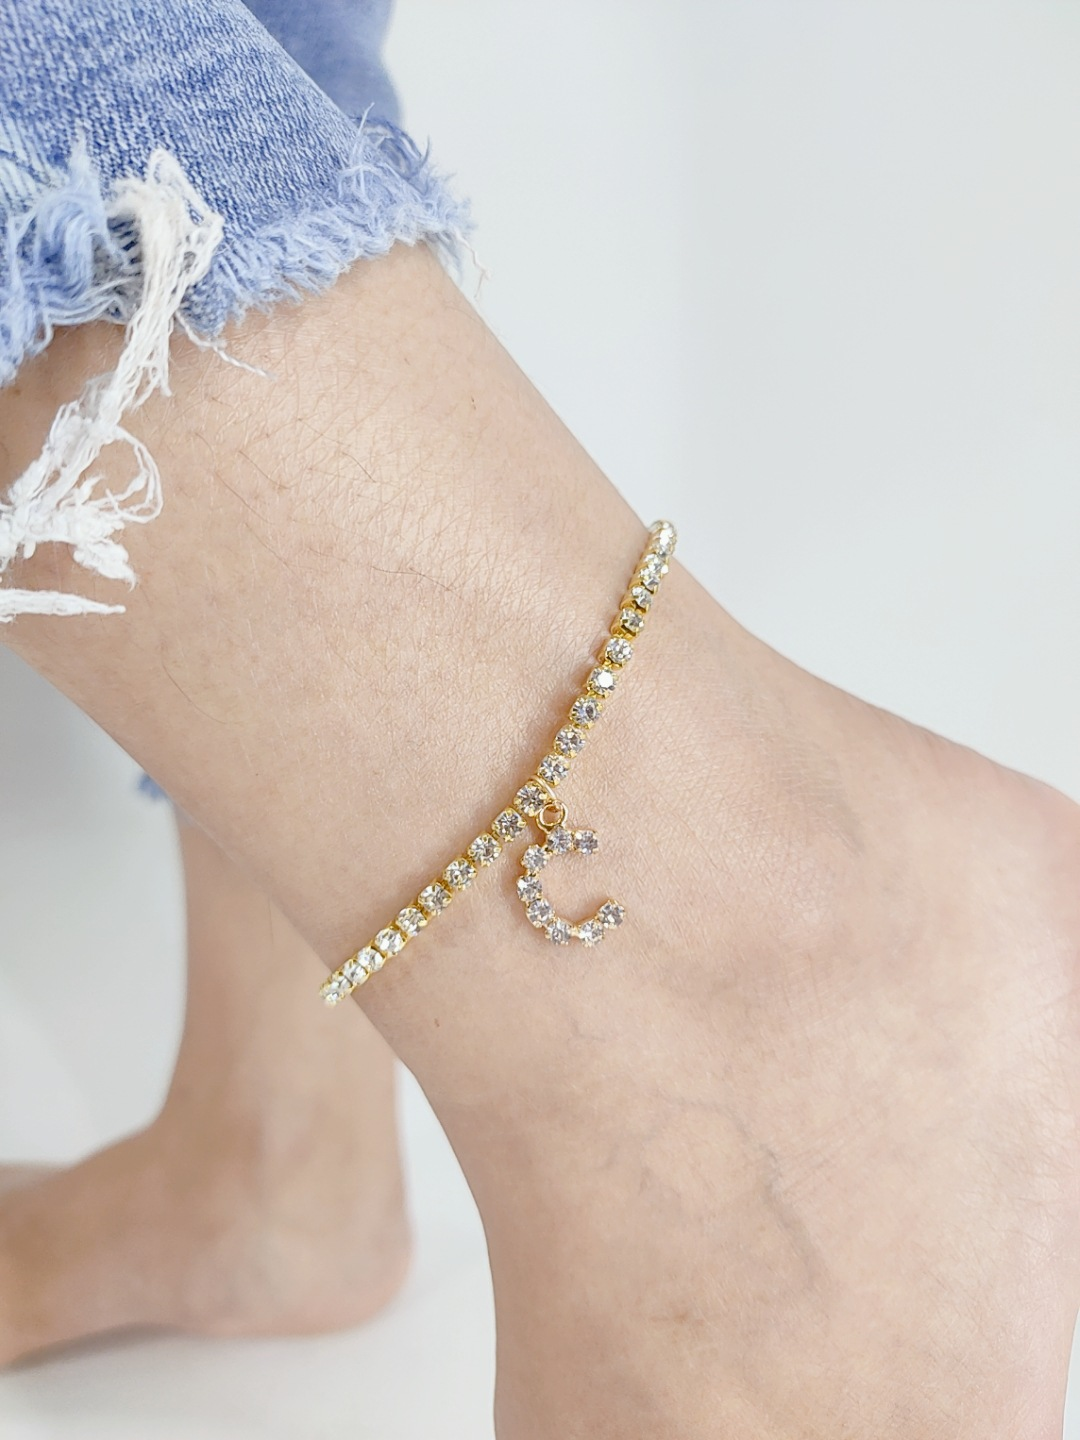 Dazzling Faux Rhinestone Letter Anklet for Elegant Foot Accessories